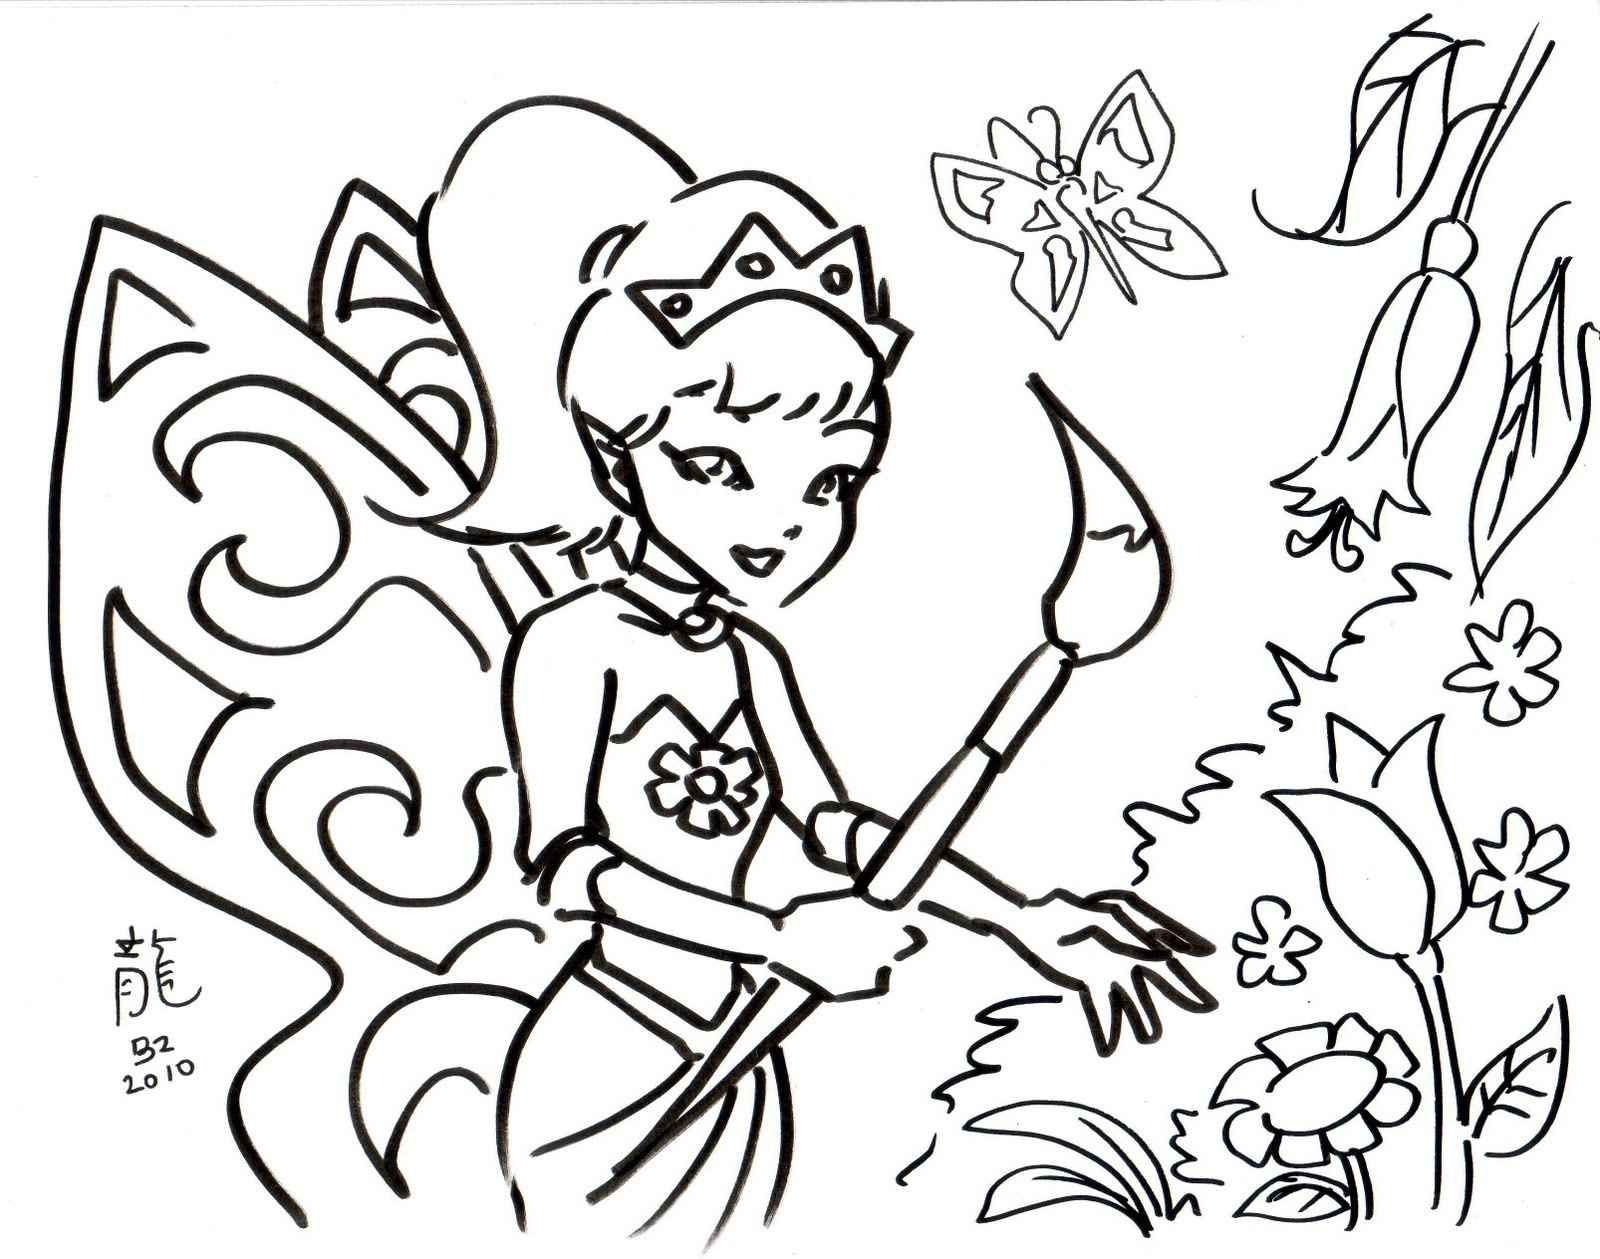 Pin by Karen Ho on Coloring Pages for 3rd Grade | Pinterest